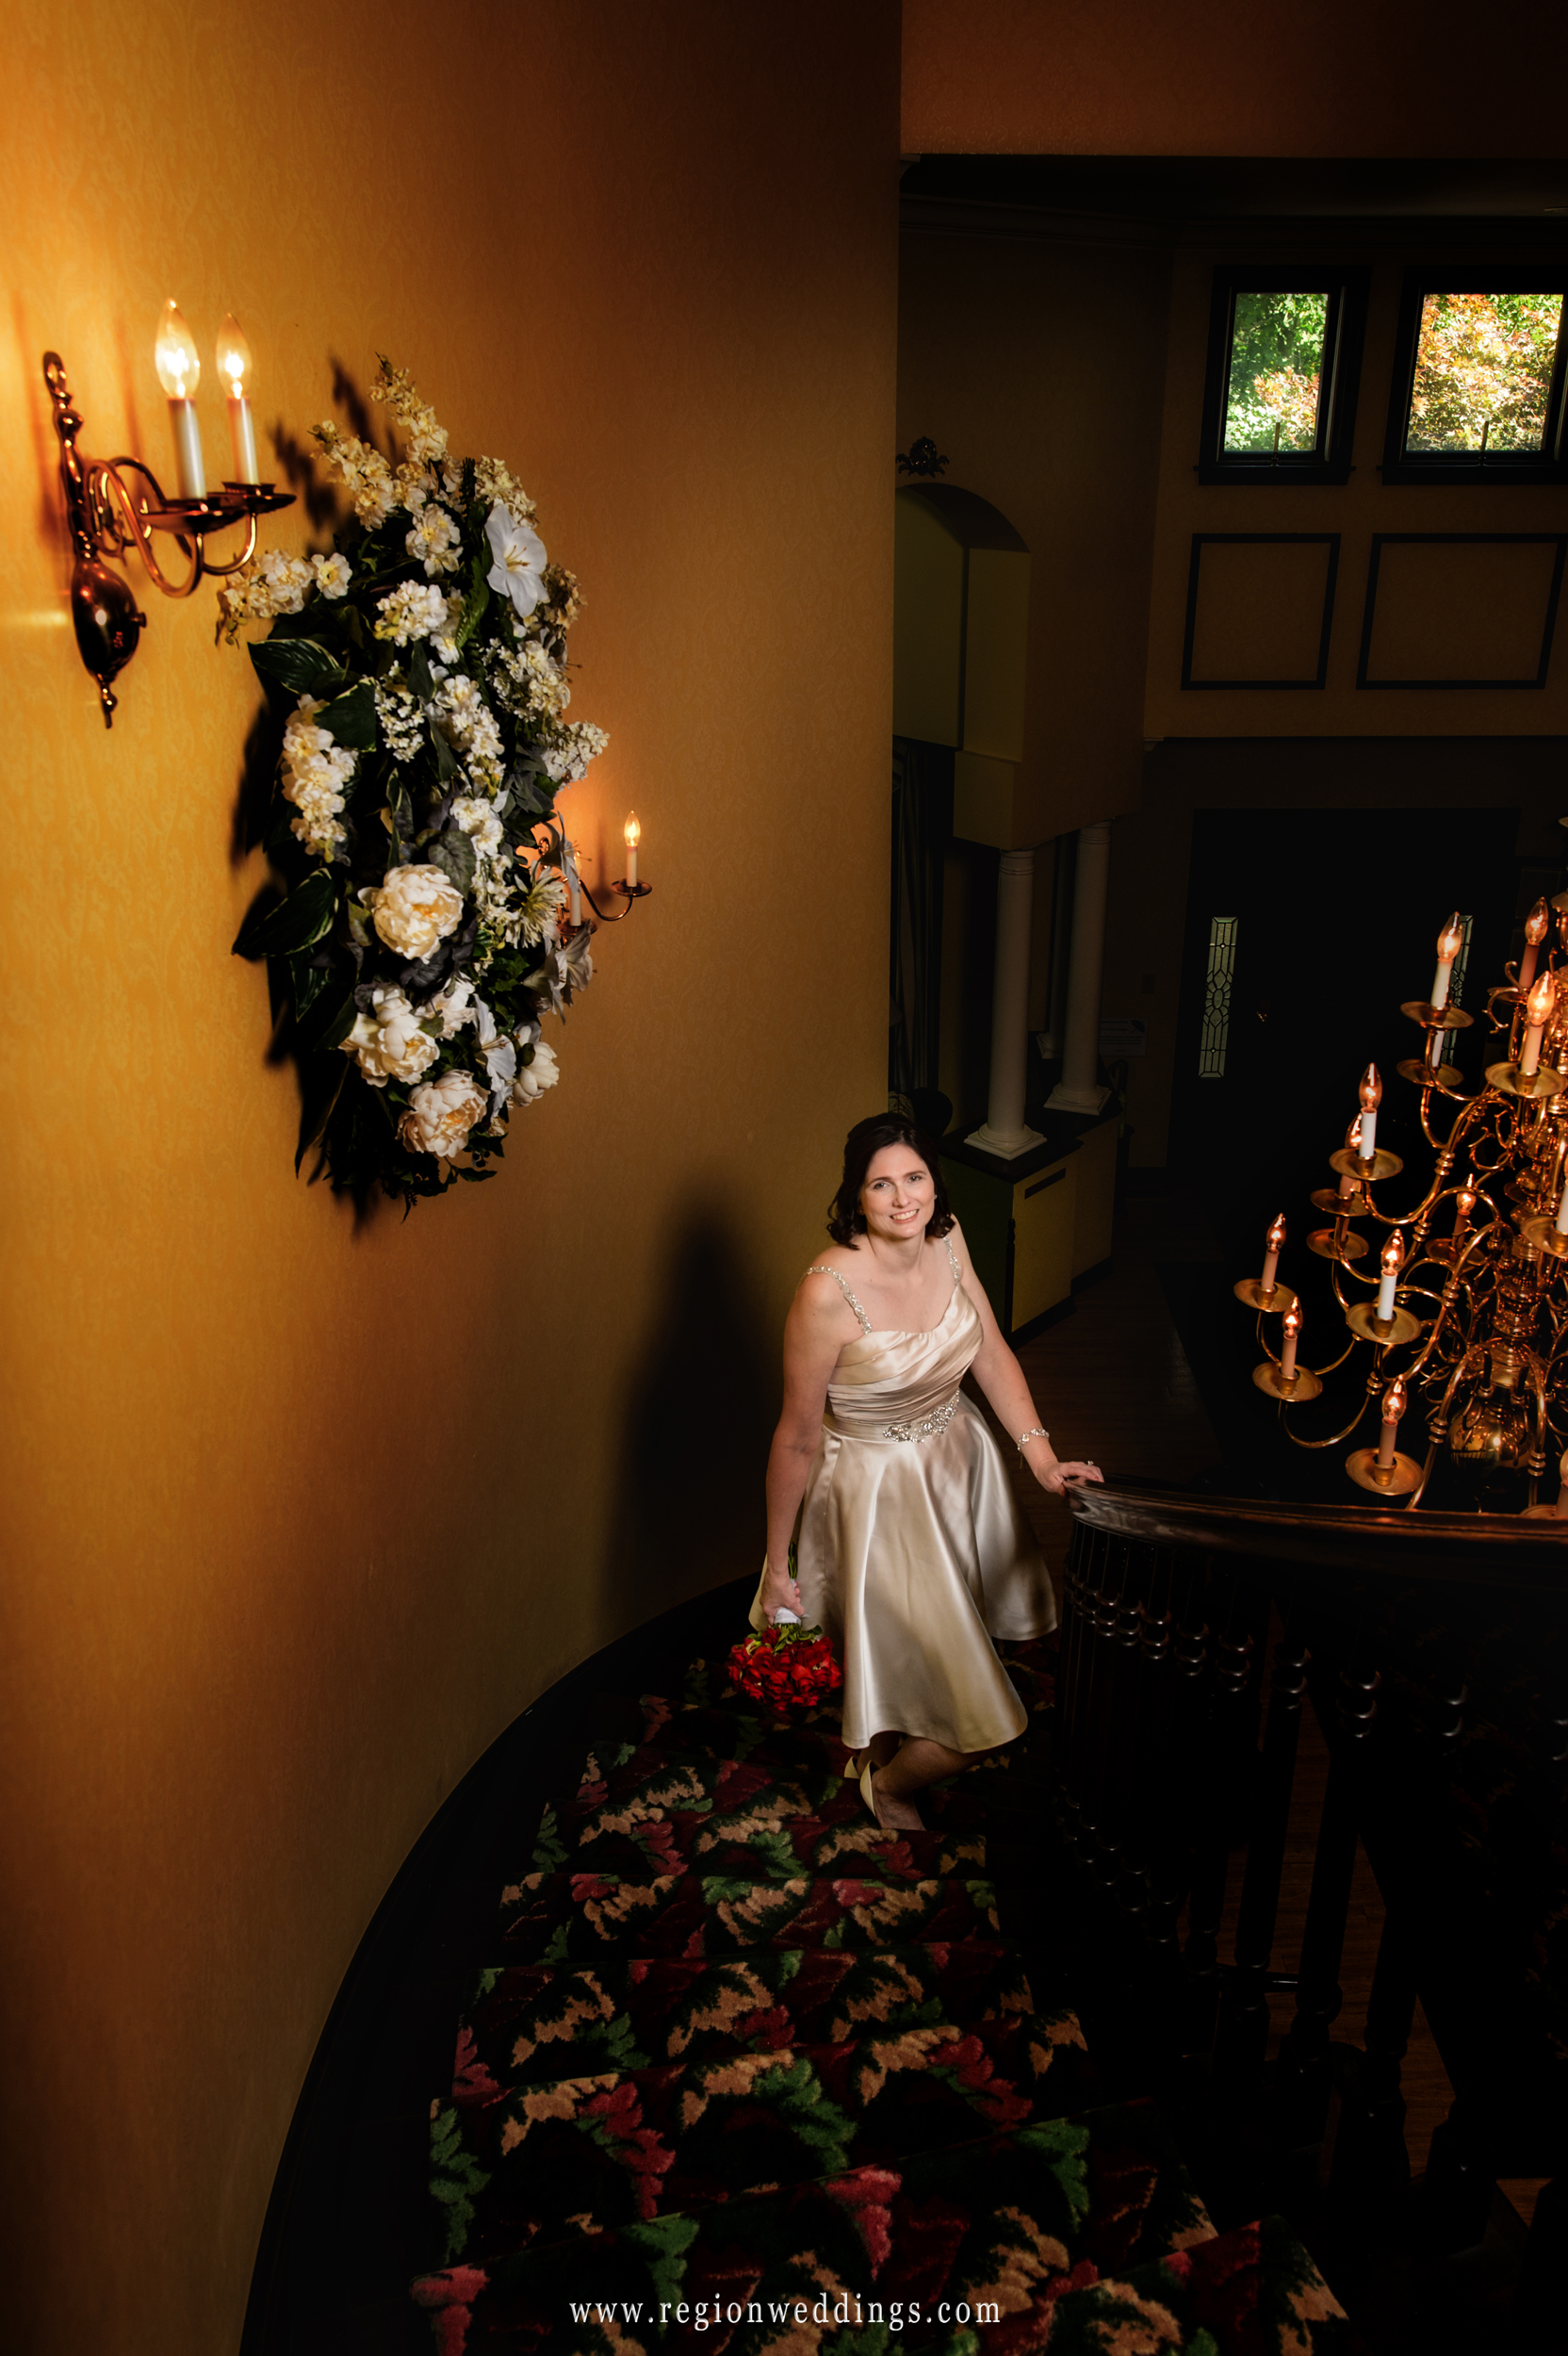 Bride on the staircase at The Inn At Aberdeen in Valparaiso, Indiana.